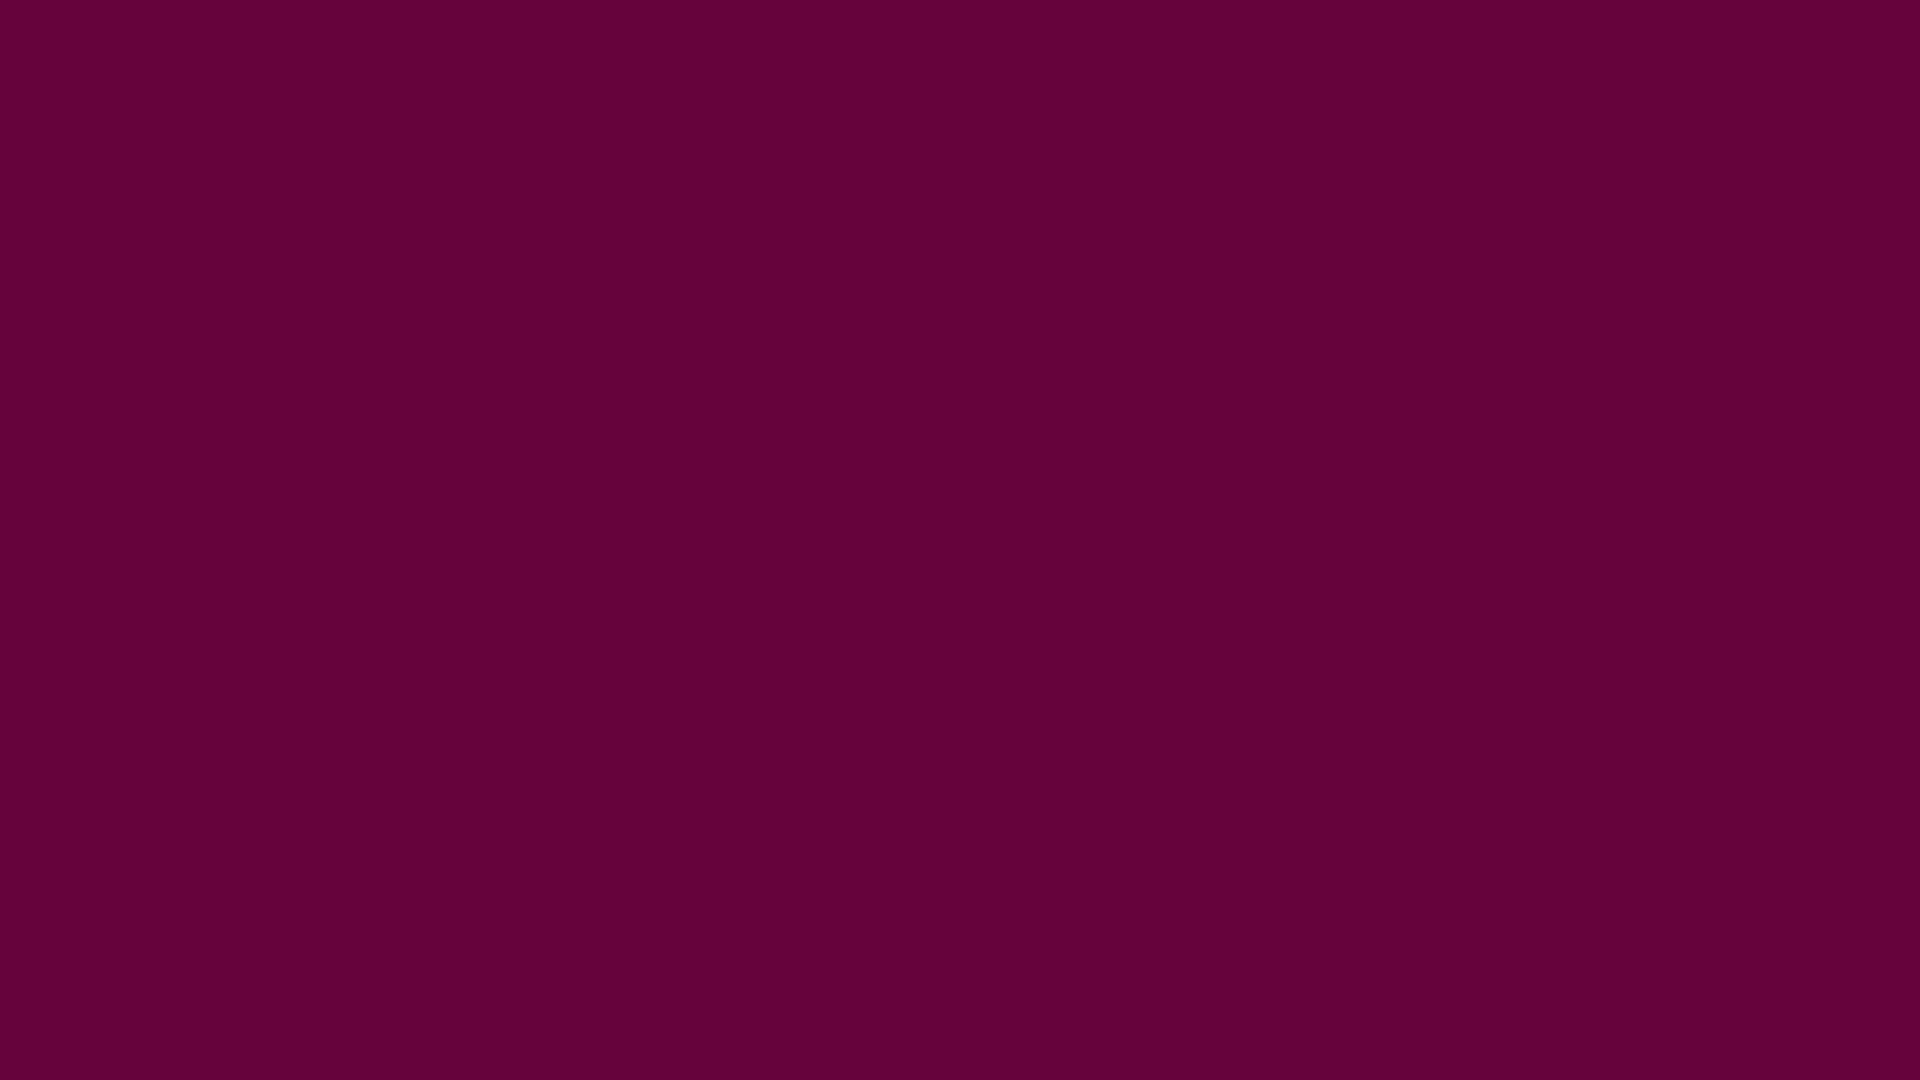 1920x1080 Tyrian Purple Solid Color Background